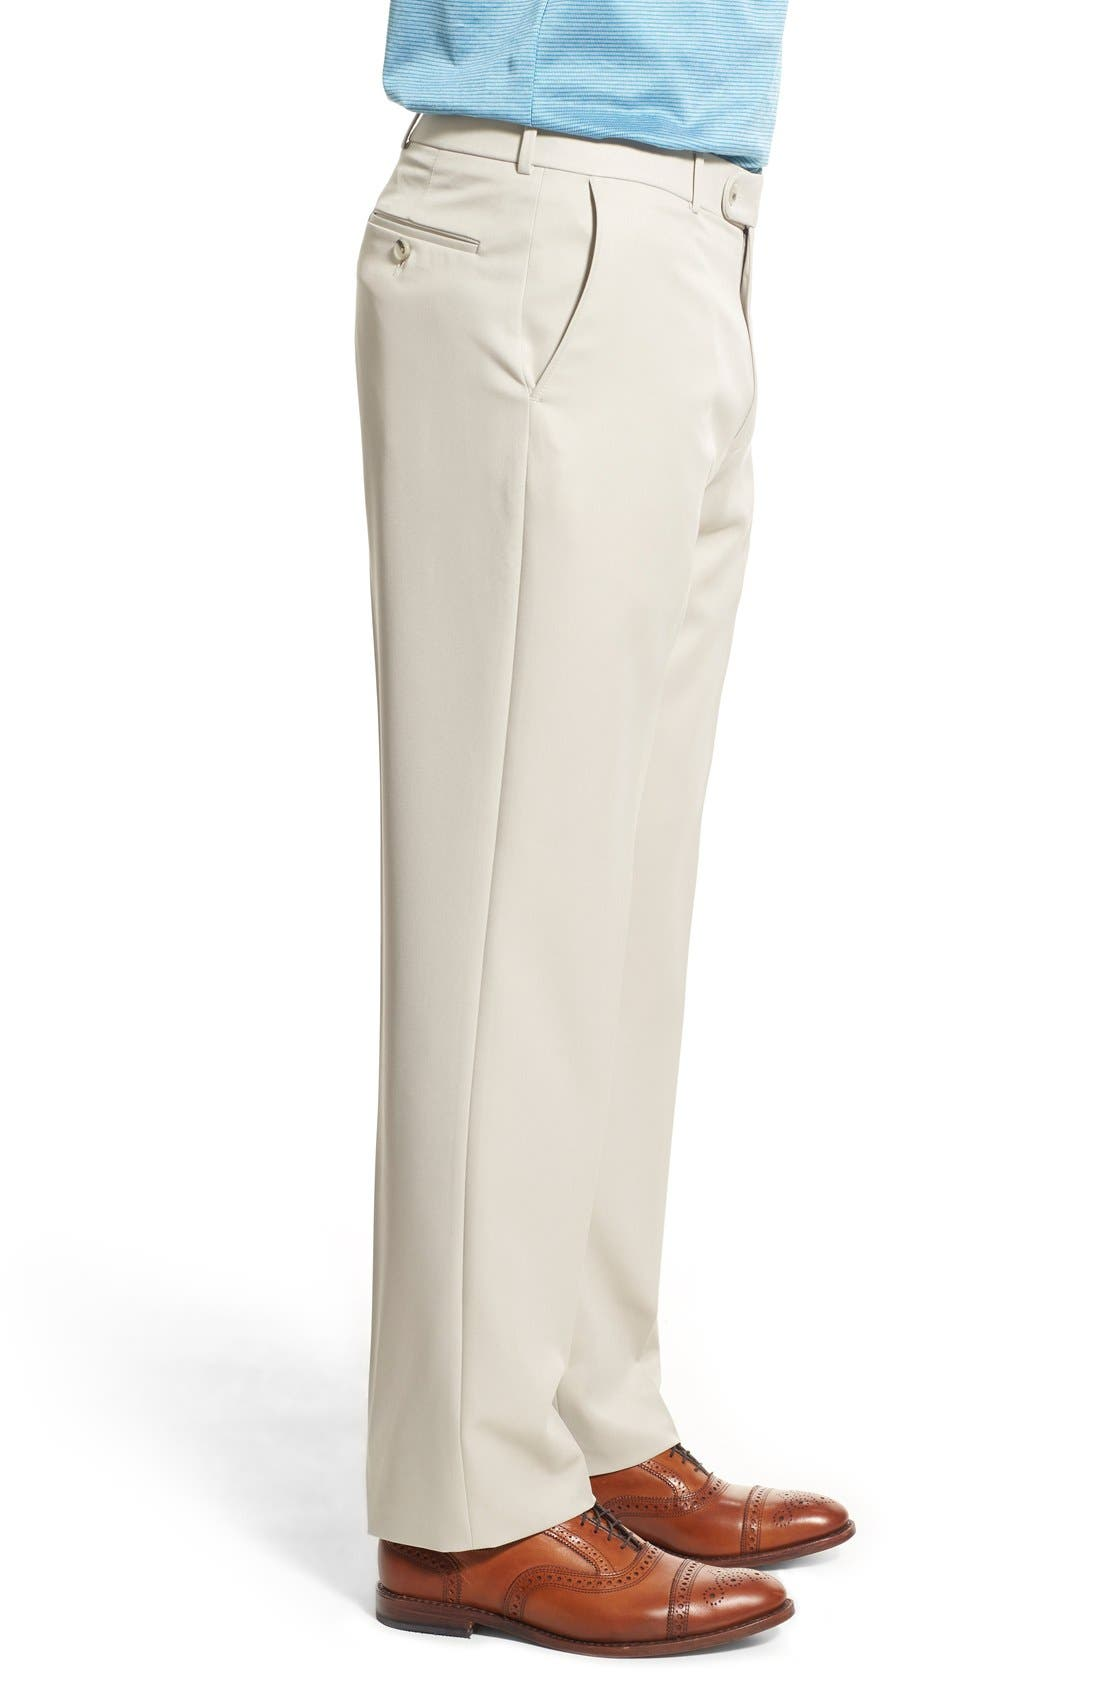 Regular Fit Flat Front Trousers,                             Alternate thumbnail 9, color,                             OYSTER